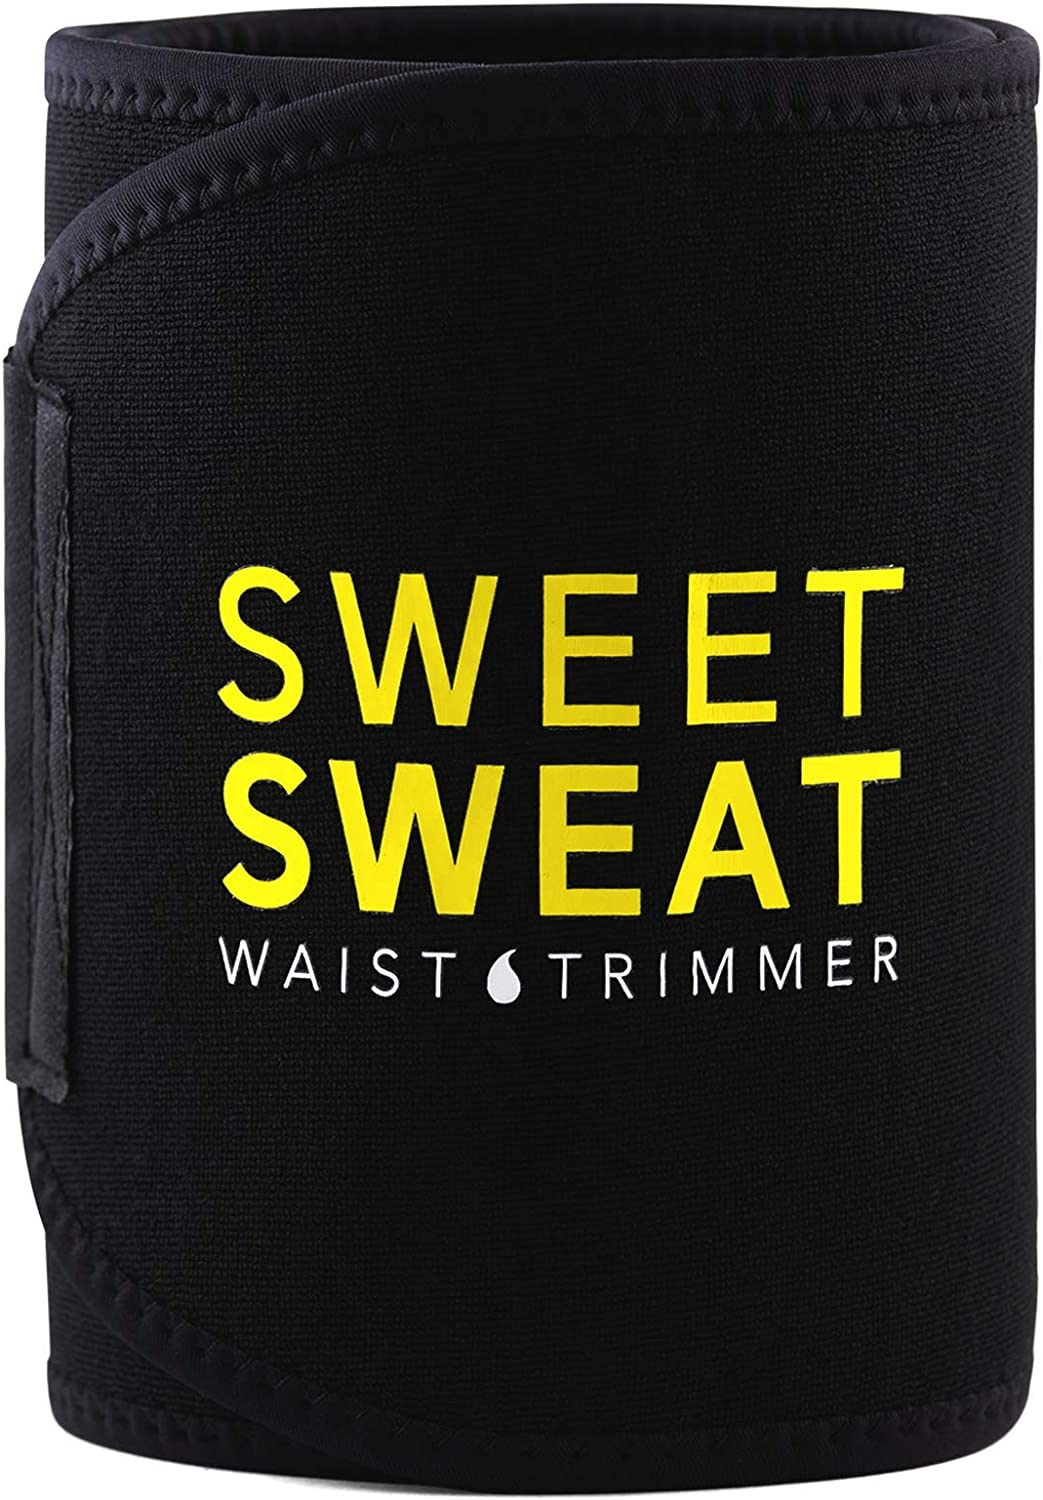 Sports Research Sweet Sweat Premium Waist Trimmer (Yellow Logo) for Men & Women. Includes Free Sample of Sweet Sweat Gel!: Sports & Outdoors